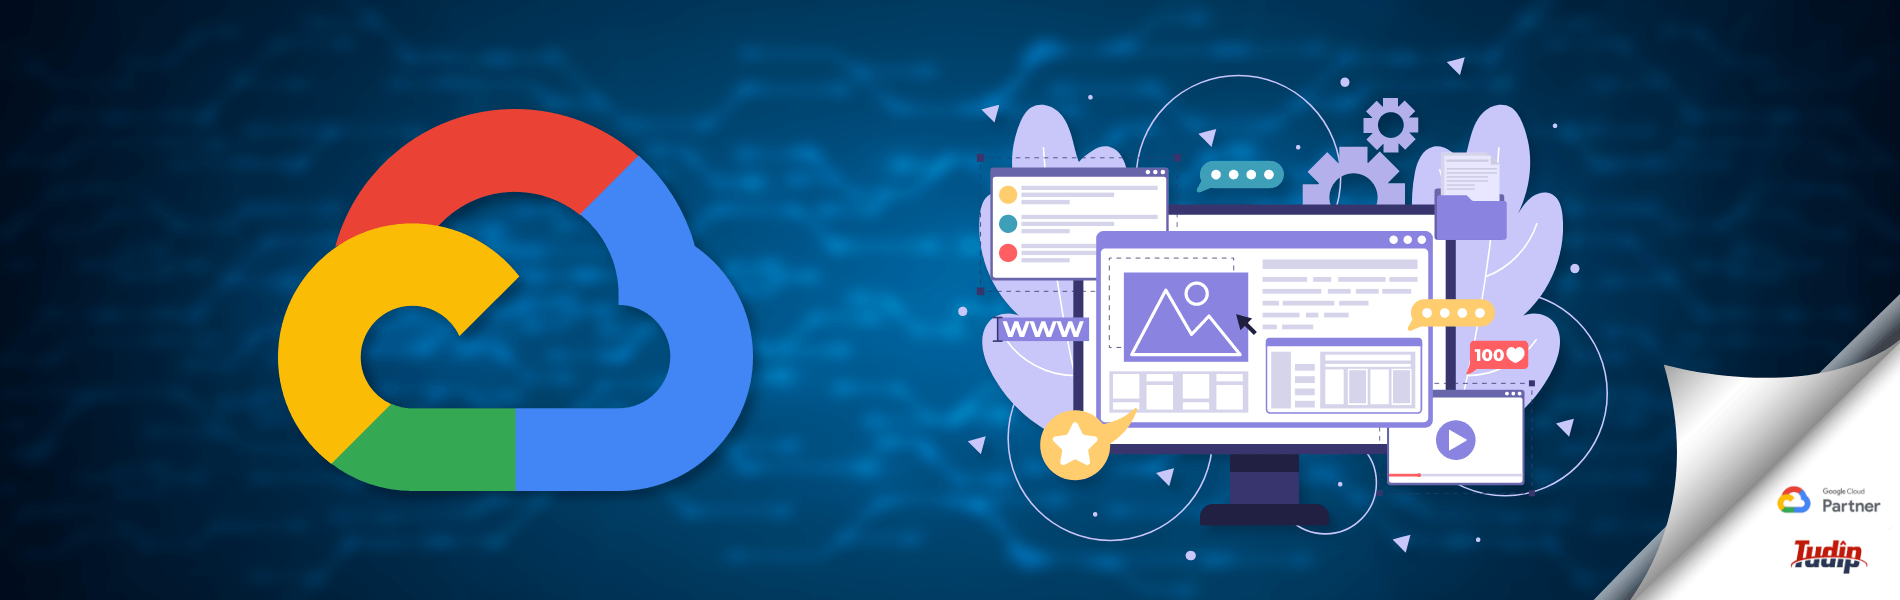 Easy Ways to Host and Build Your Website in Google Cloud Platform